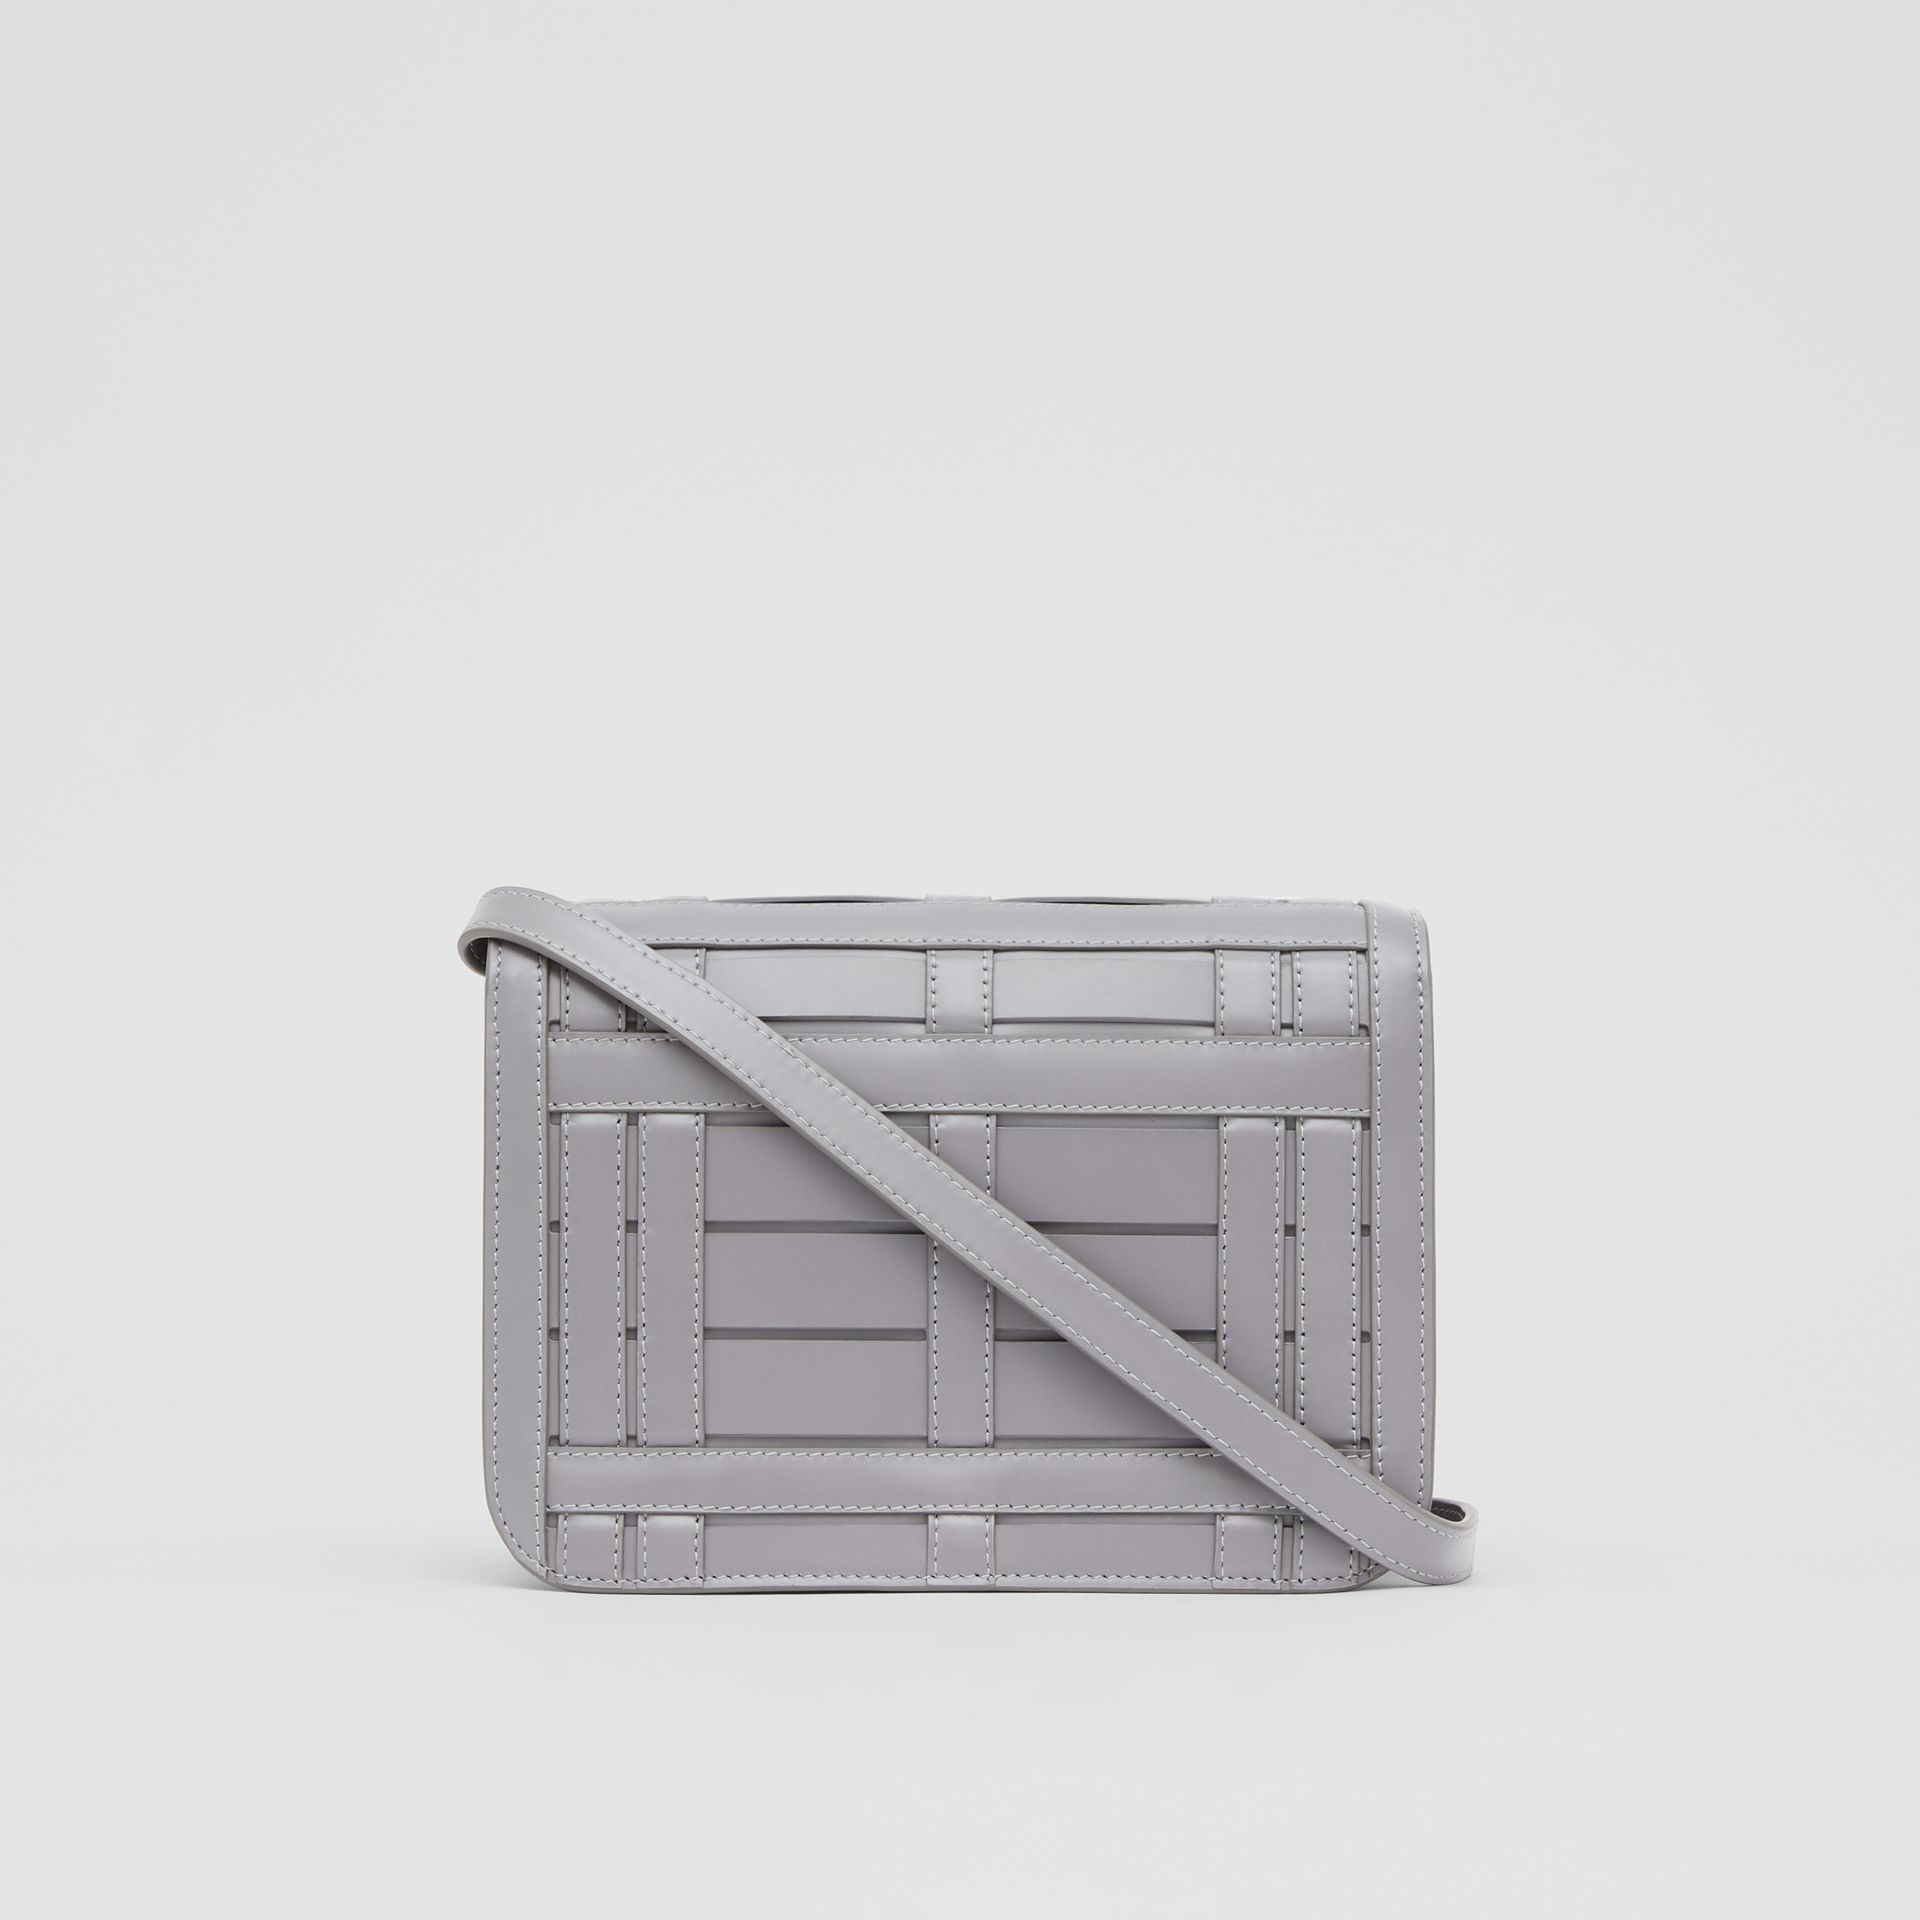 Small Woven Leather TB Bag in Cloud Grey - Women | Burberry United Kingdom - gallery image 7